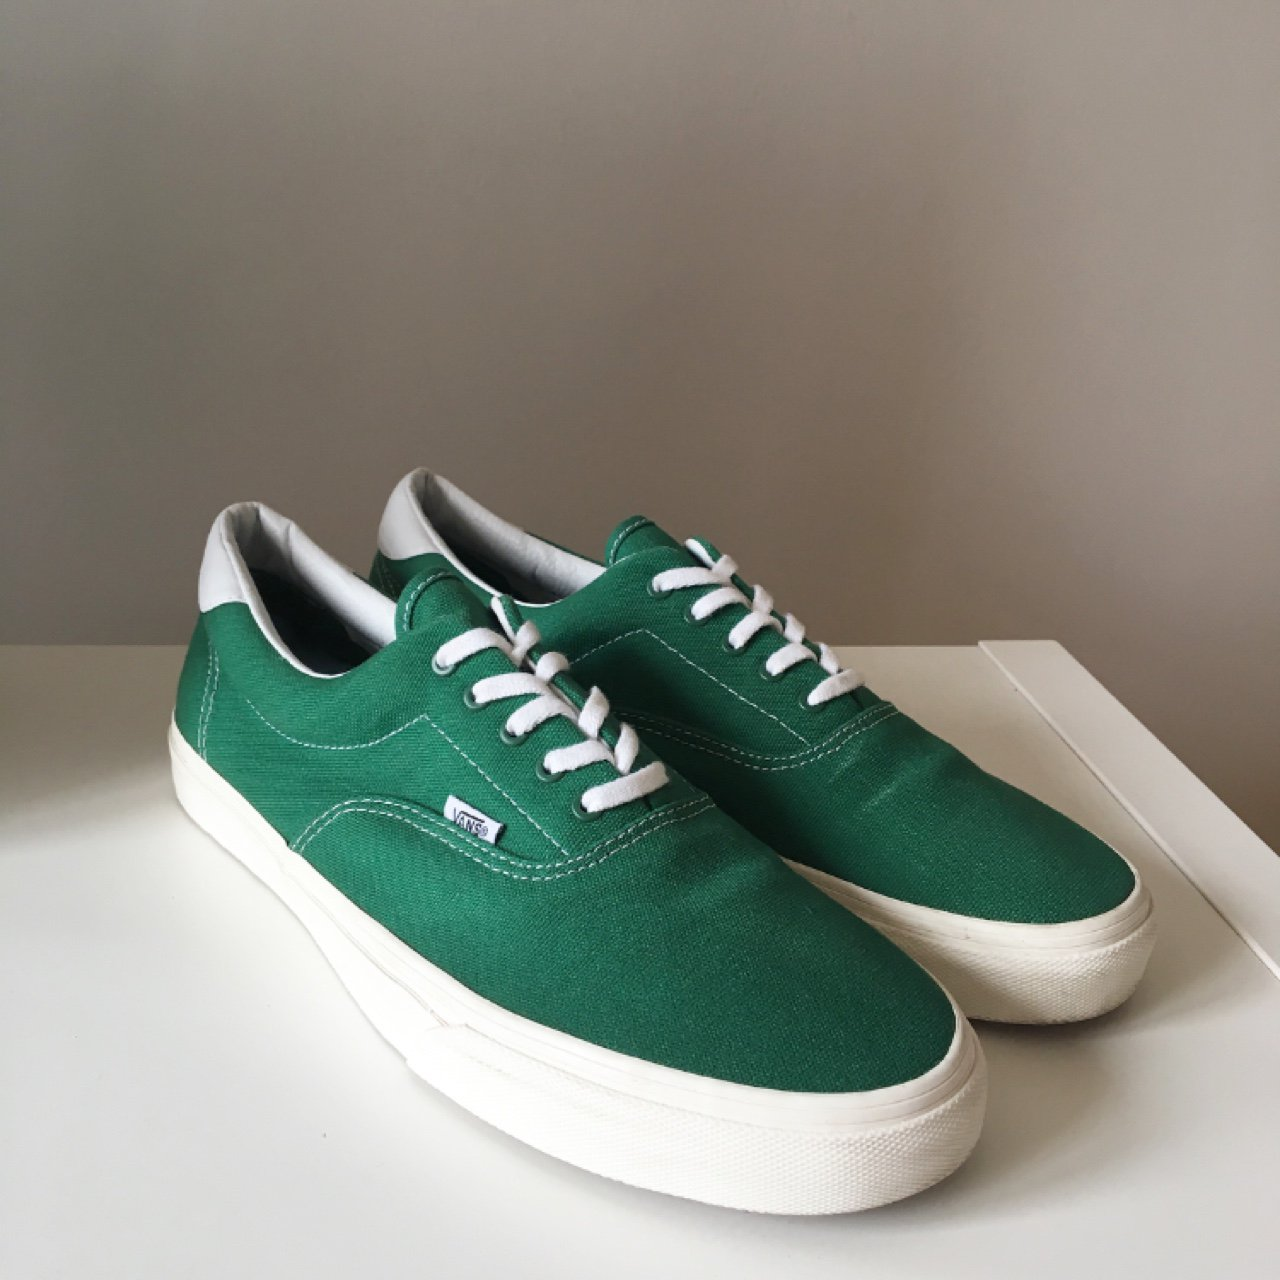 Vans Era 59. Green with off-white midsole and honeycomb worn - Depop 523bc27fb4